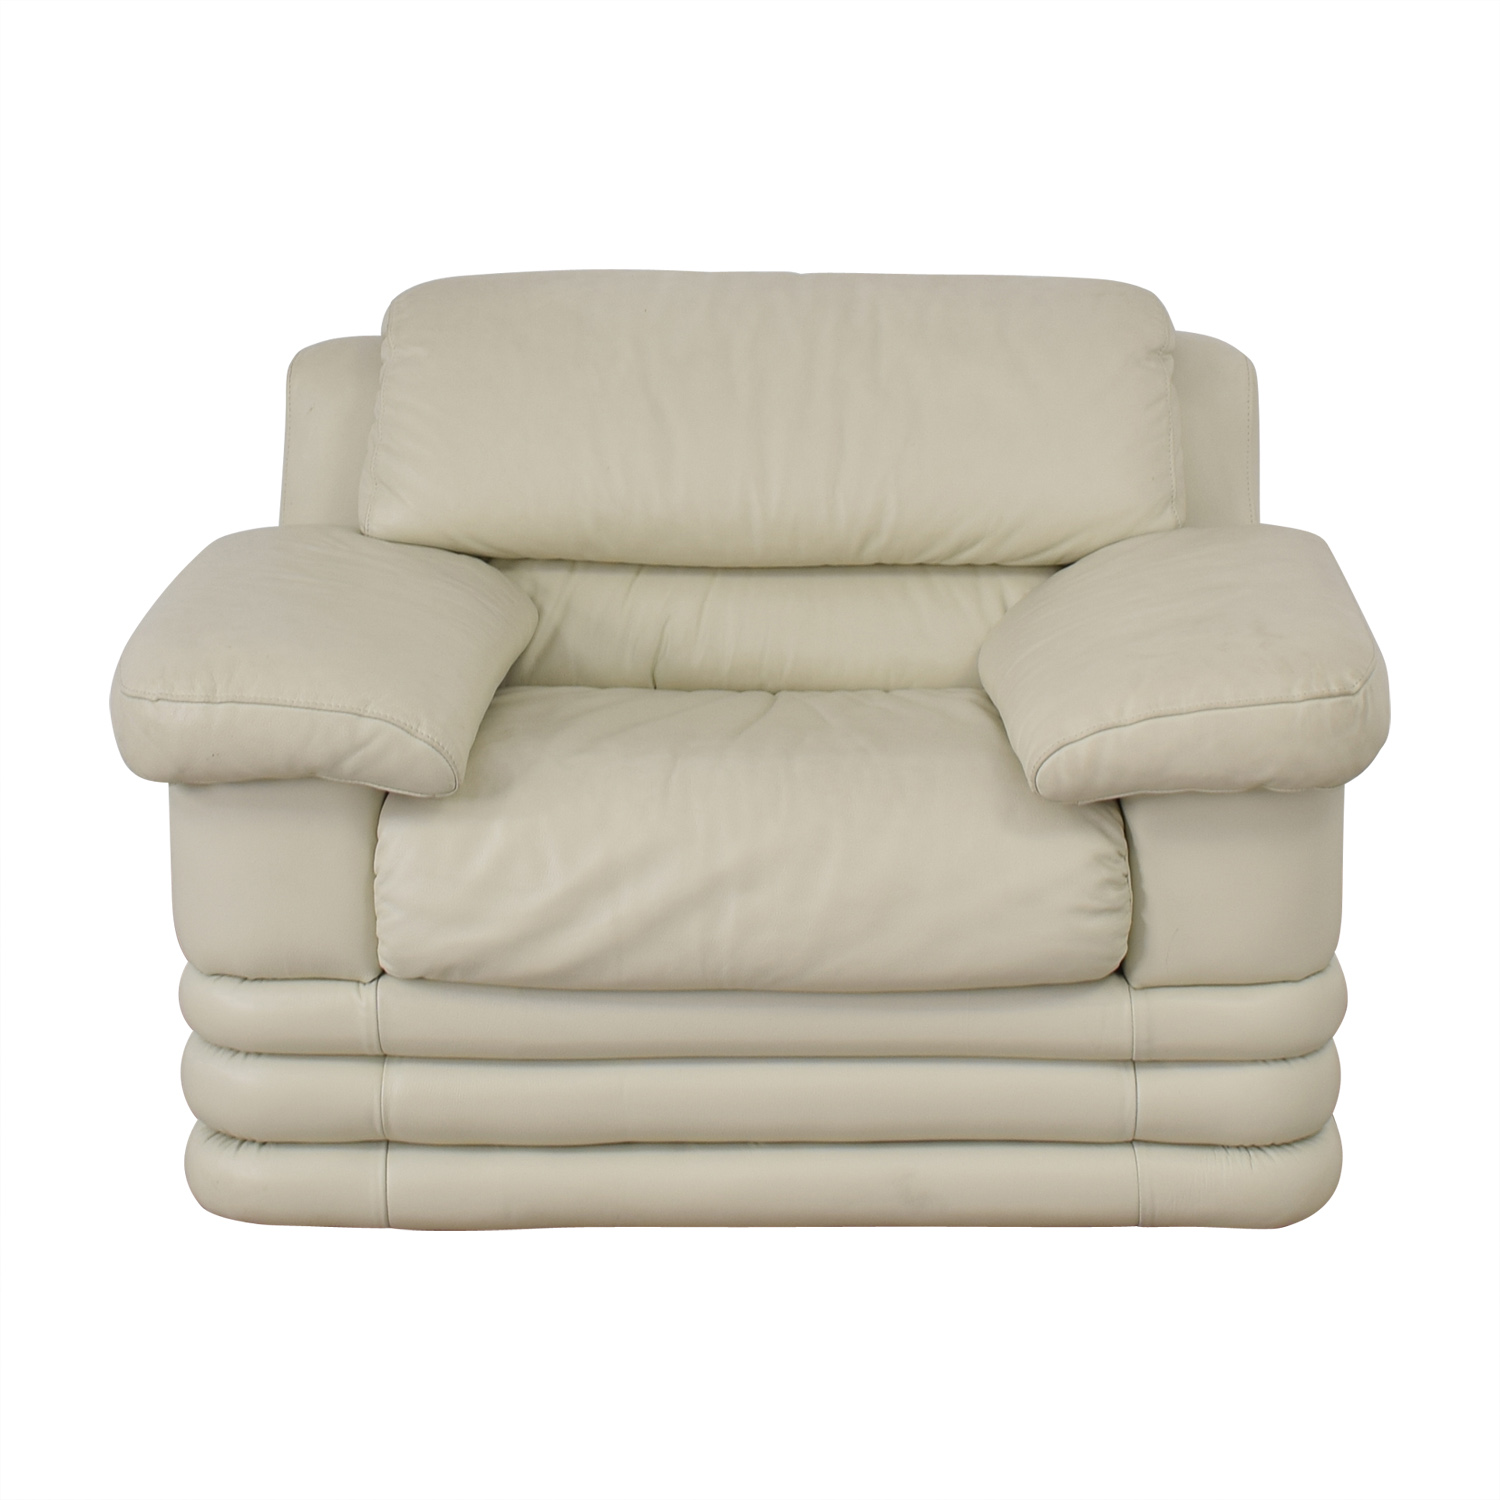 shop  White Leather Loveseat online